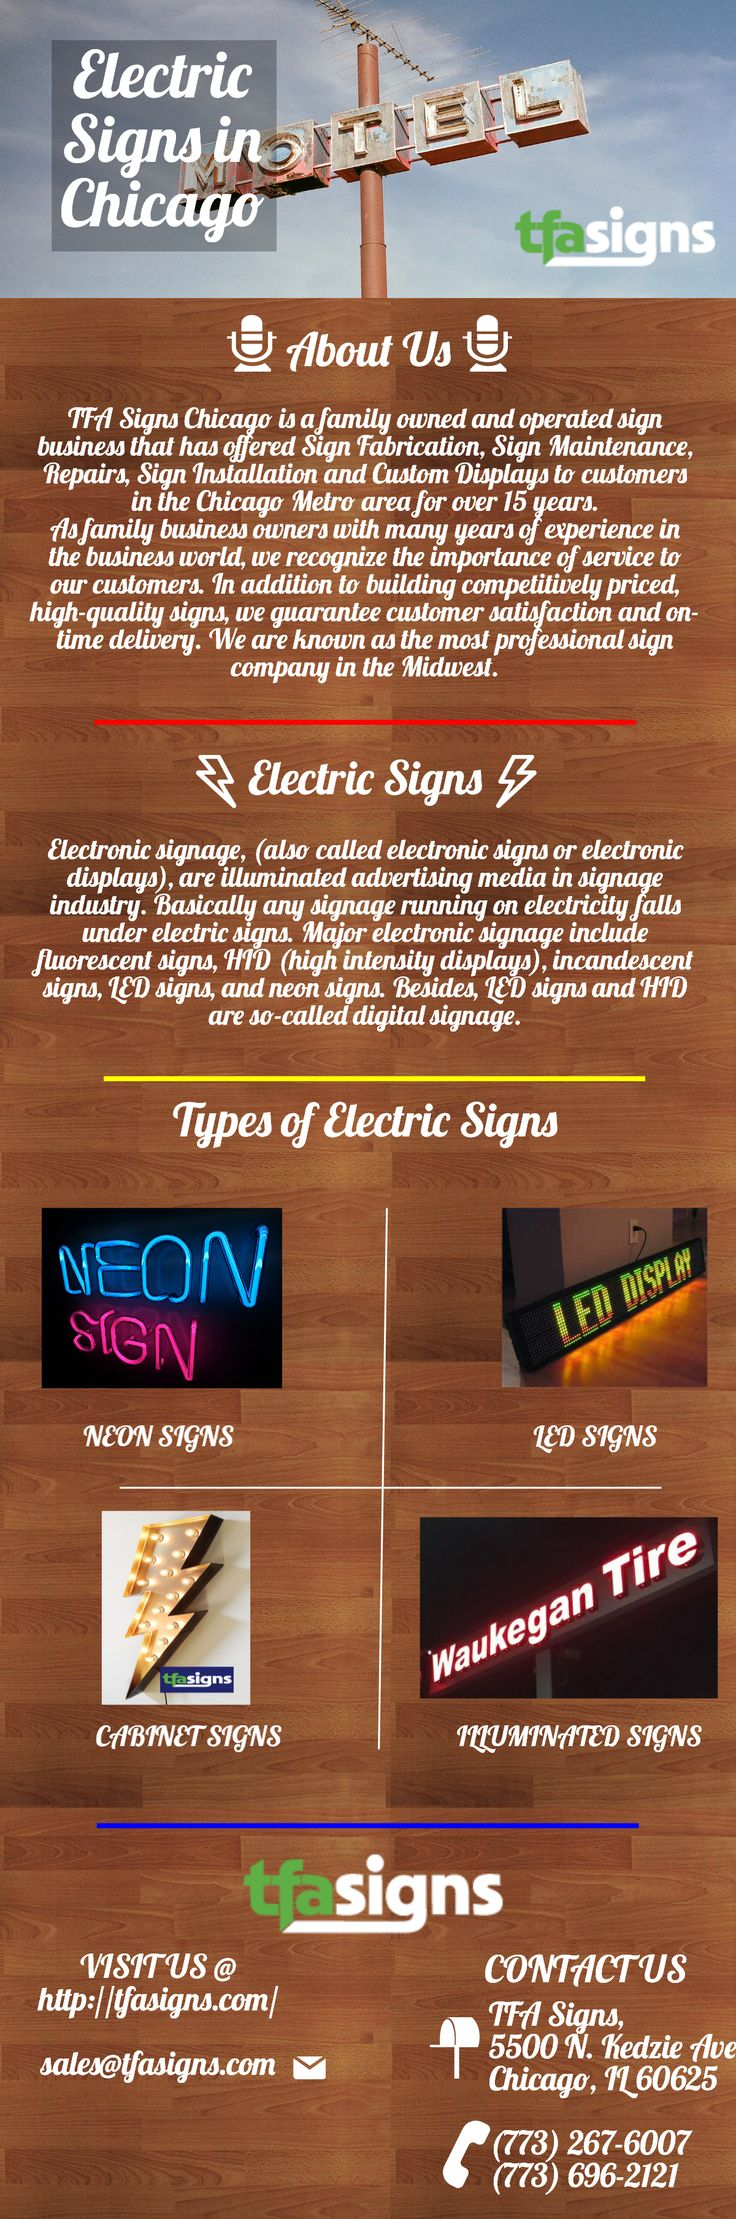 Tfa signs offers electric signs in Chicago. We provide variety of electric signs. We have experience of more than 20 years. We assure quality of our work and your satisfaction. Visit our site for more info or details. http://tfasigns.com